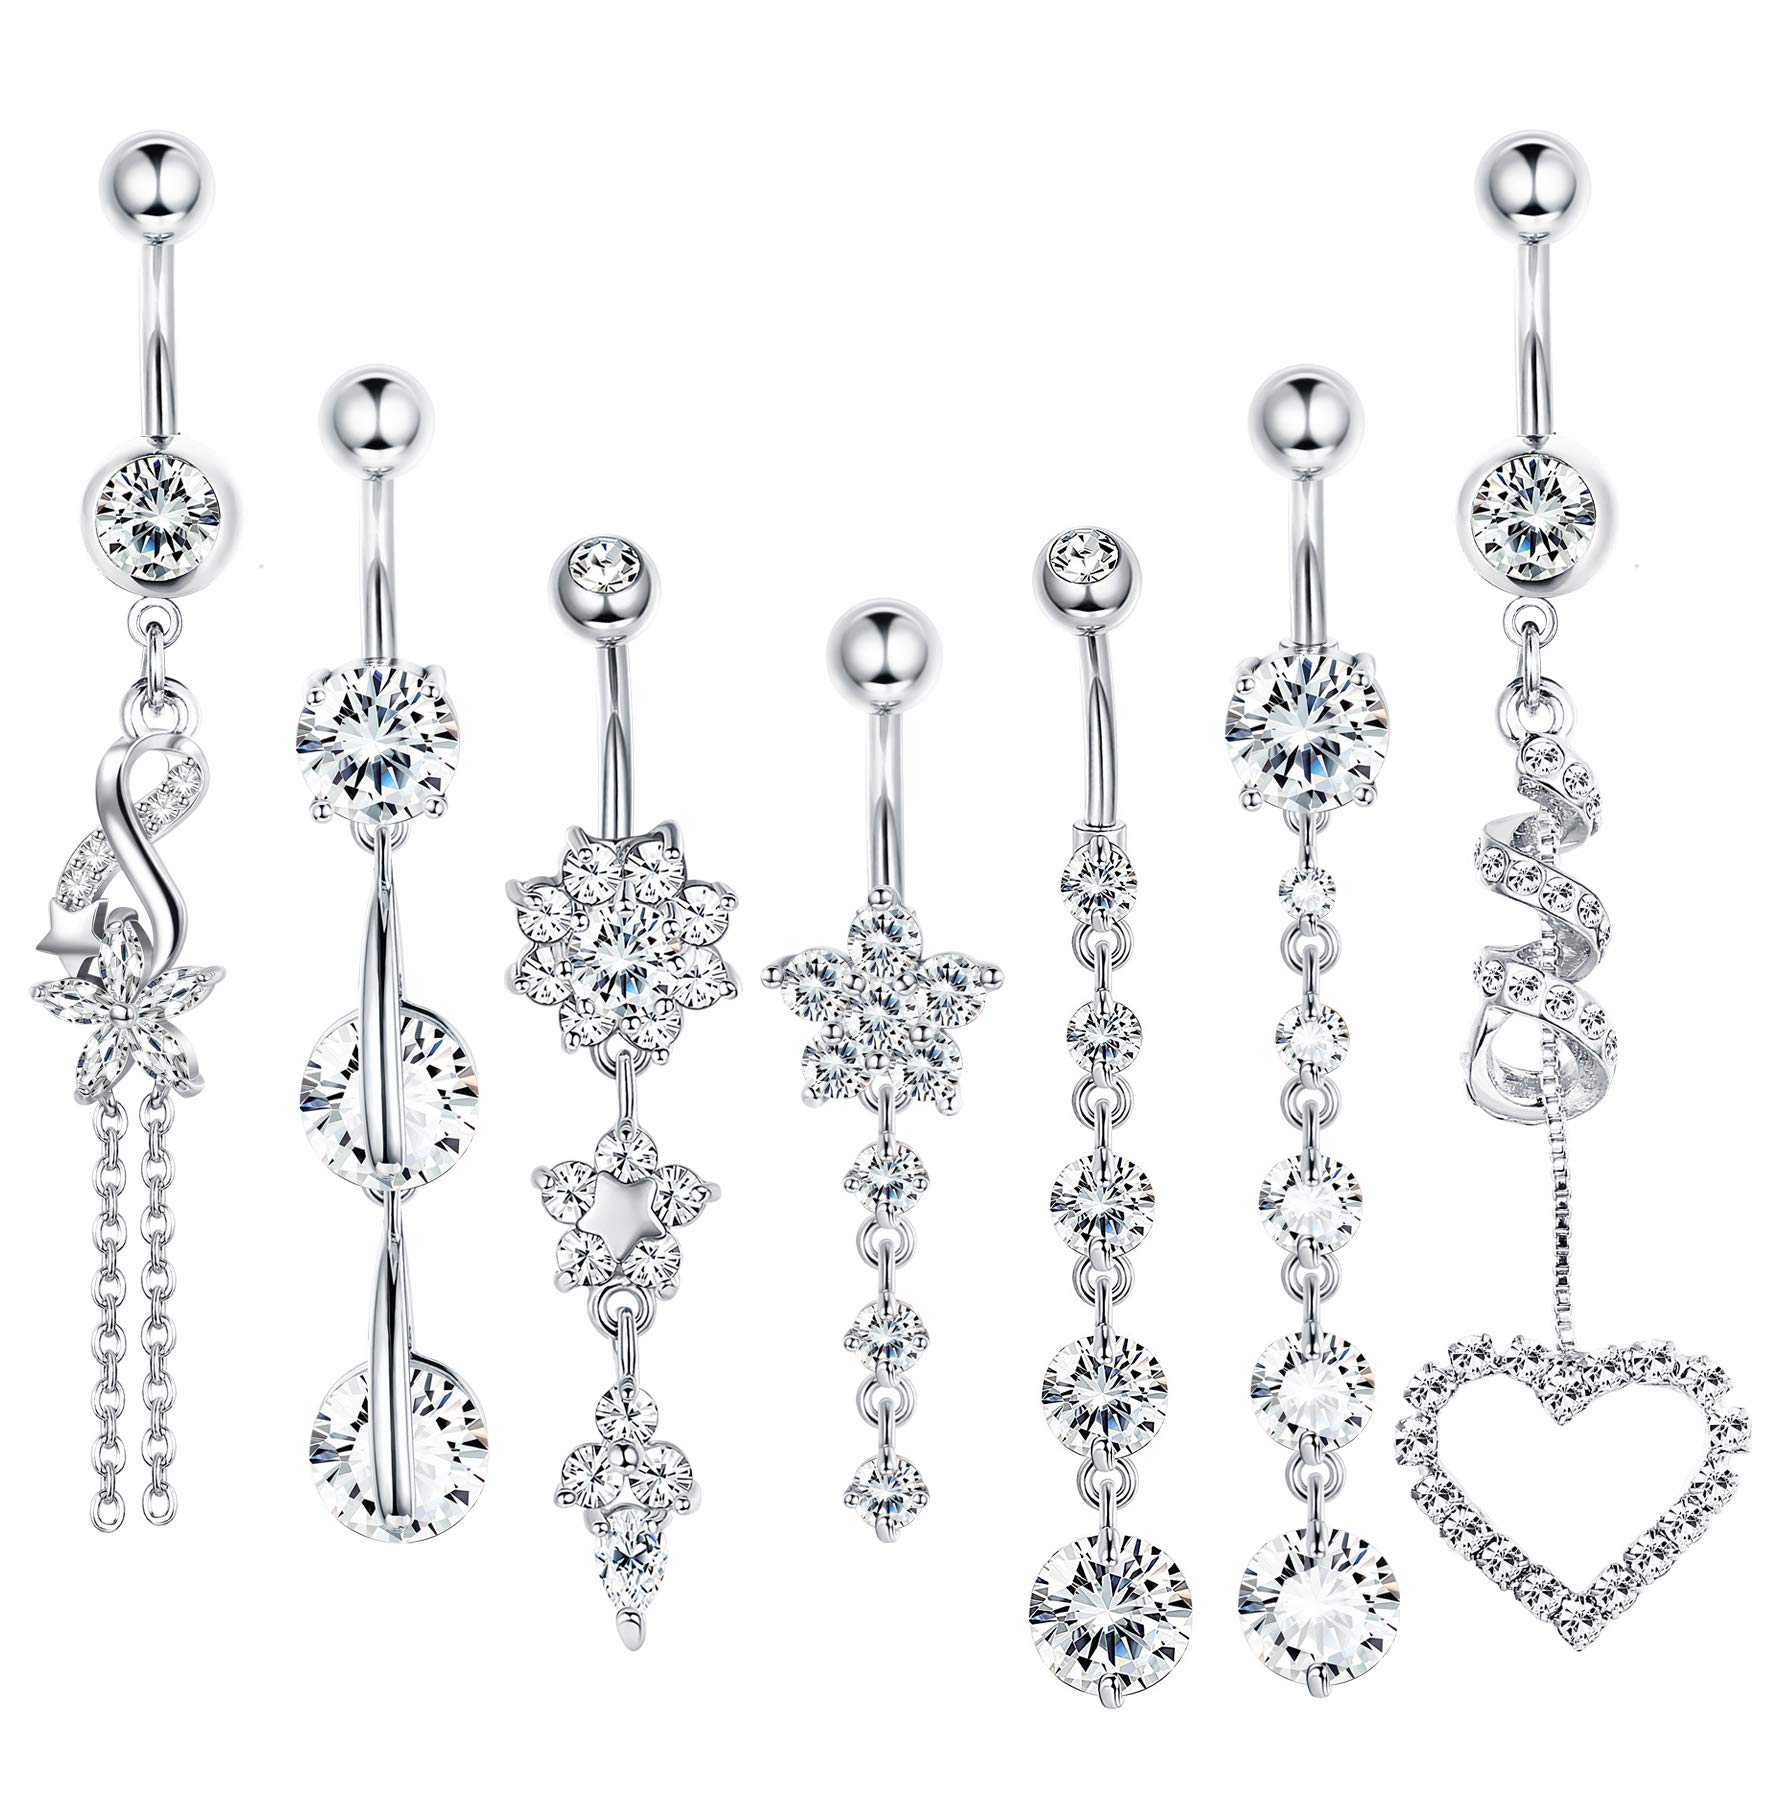 LOLIAS 7 Pcs 14G Dangle Belly Button Rings for Women Girls 316L Surgical Steel Curved Navel Barbell Body Jewelry Piercing,S by LOLIAS